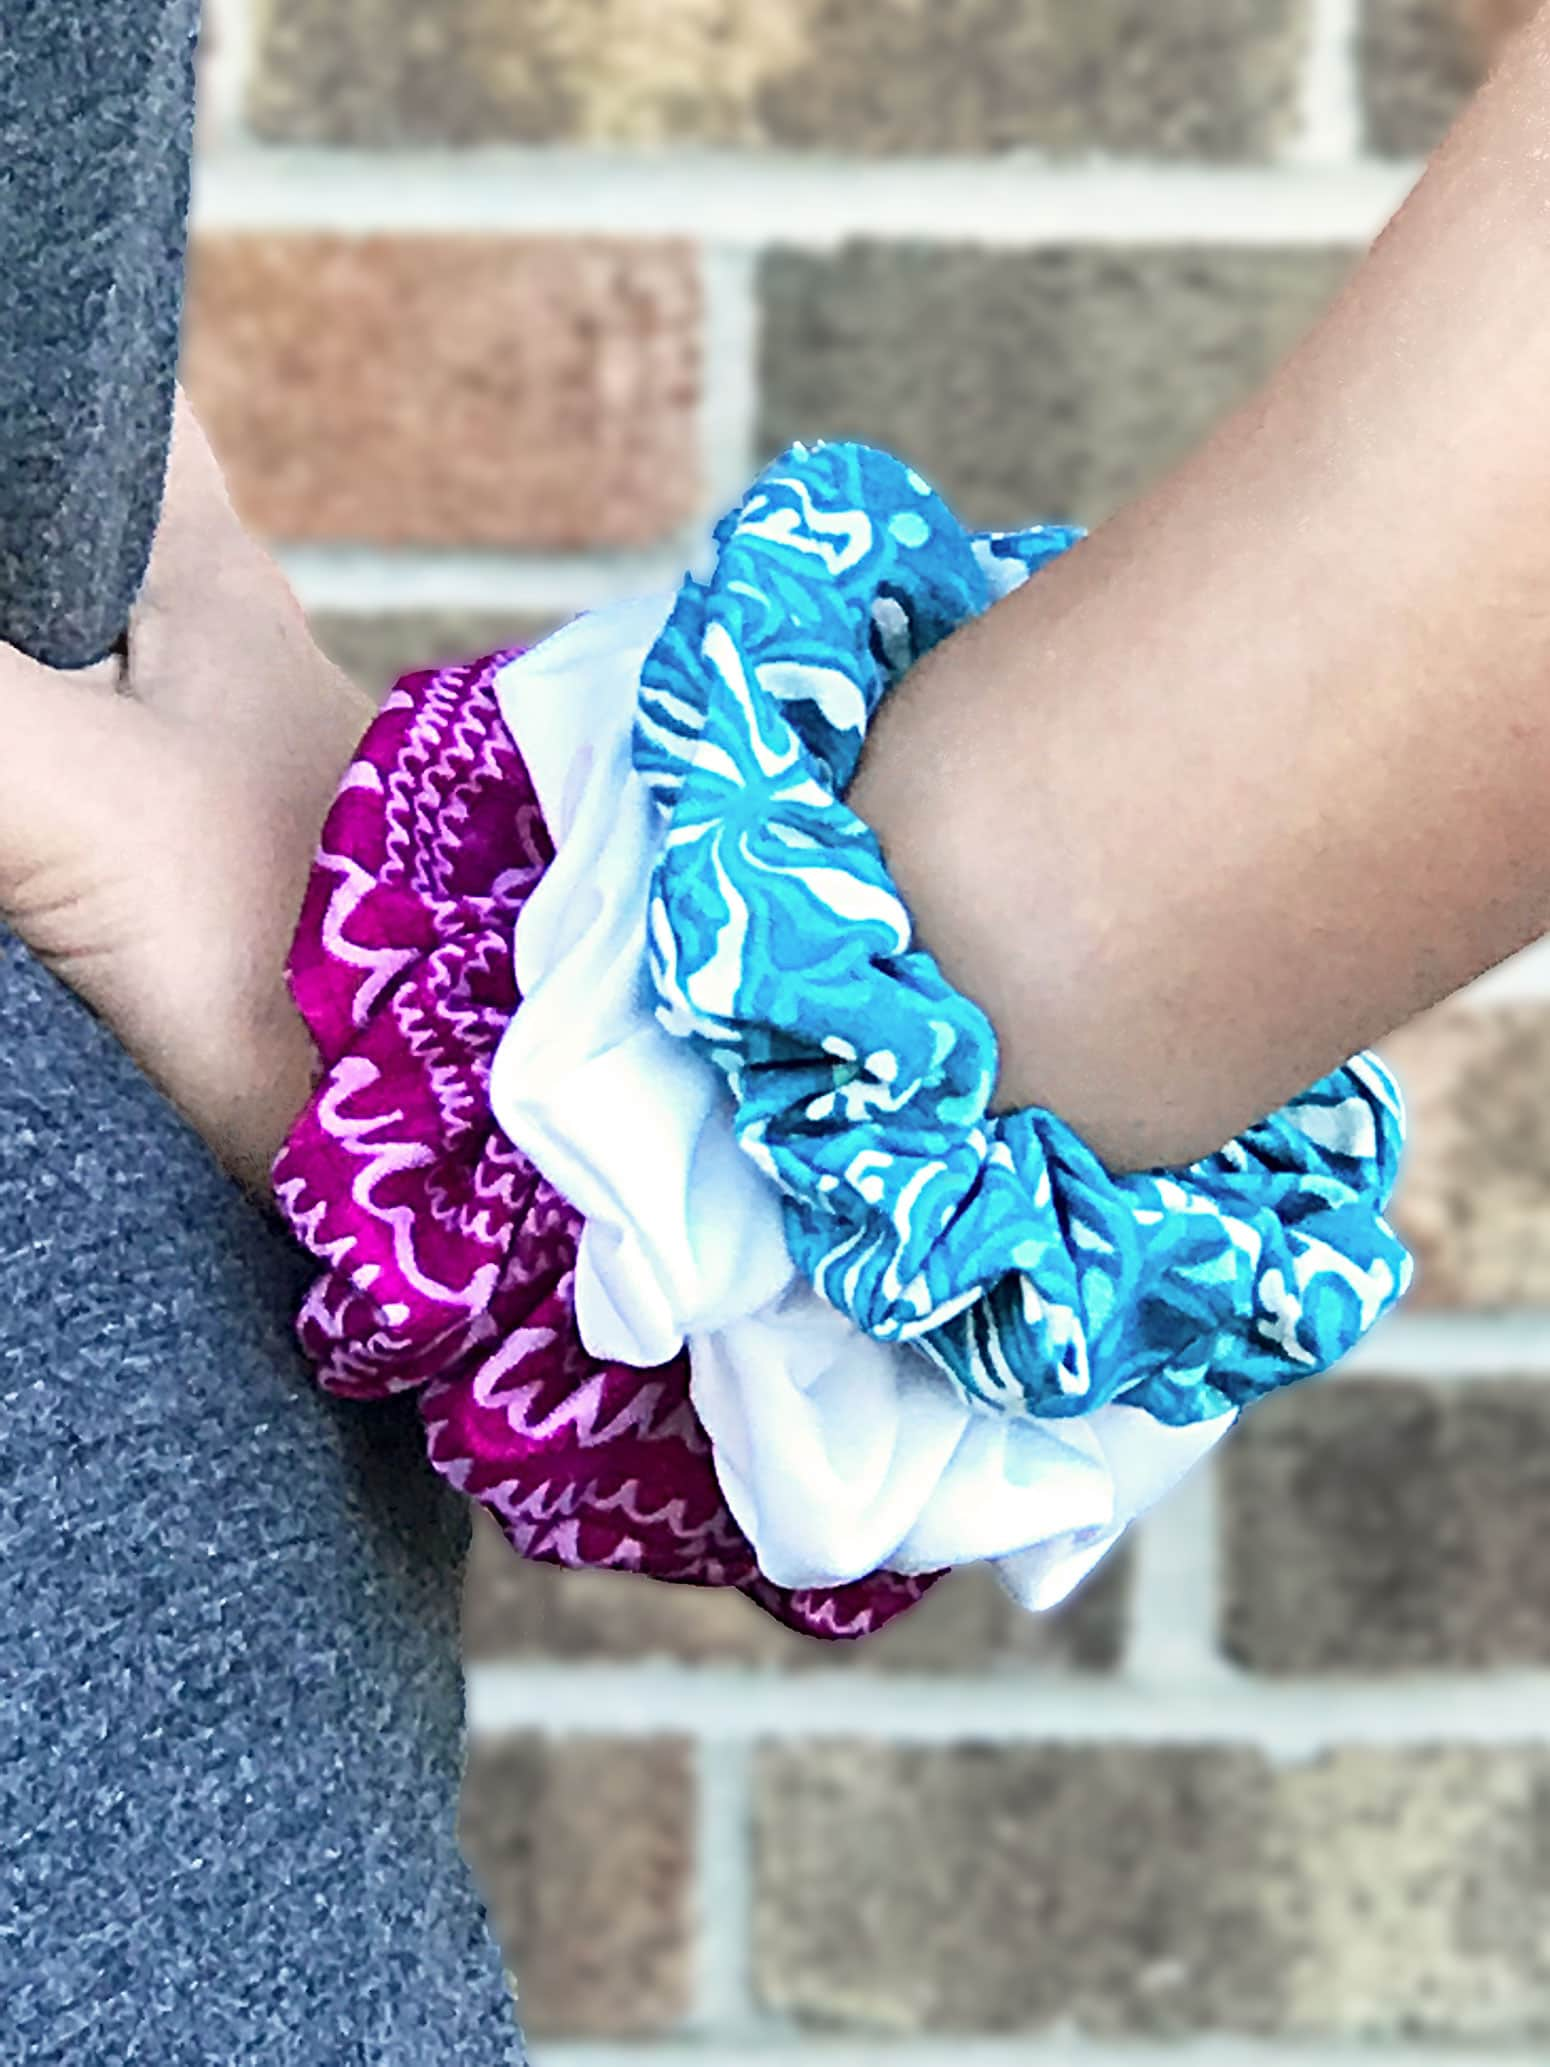 Pink, aqua, and white scrunchies on wrist.